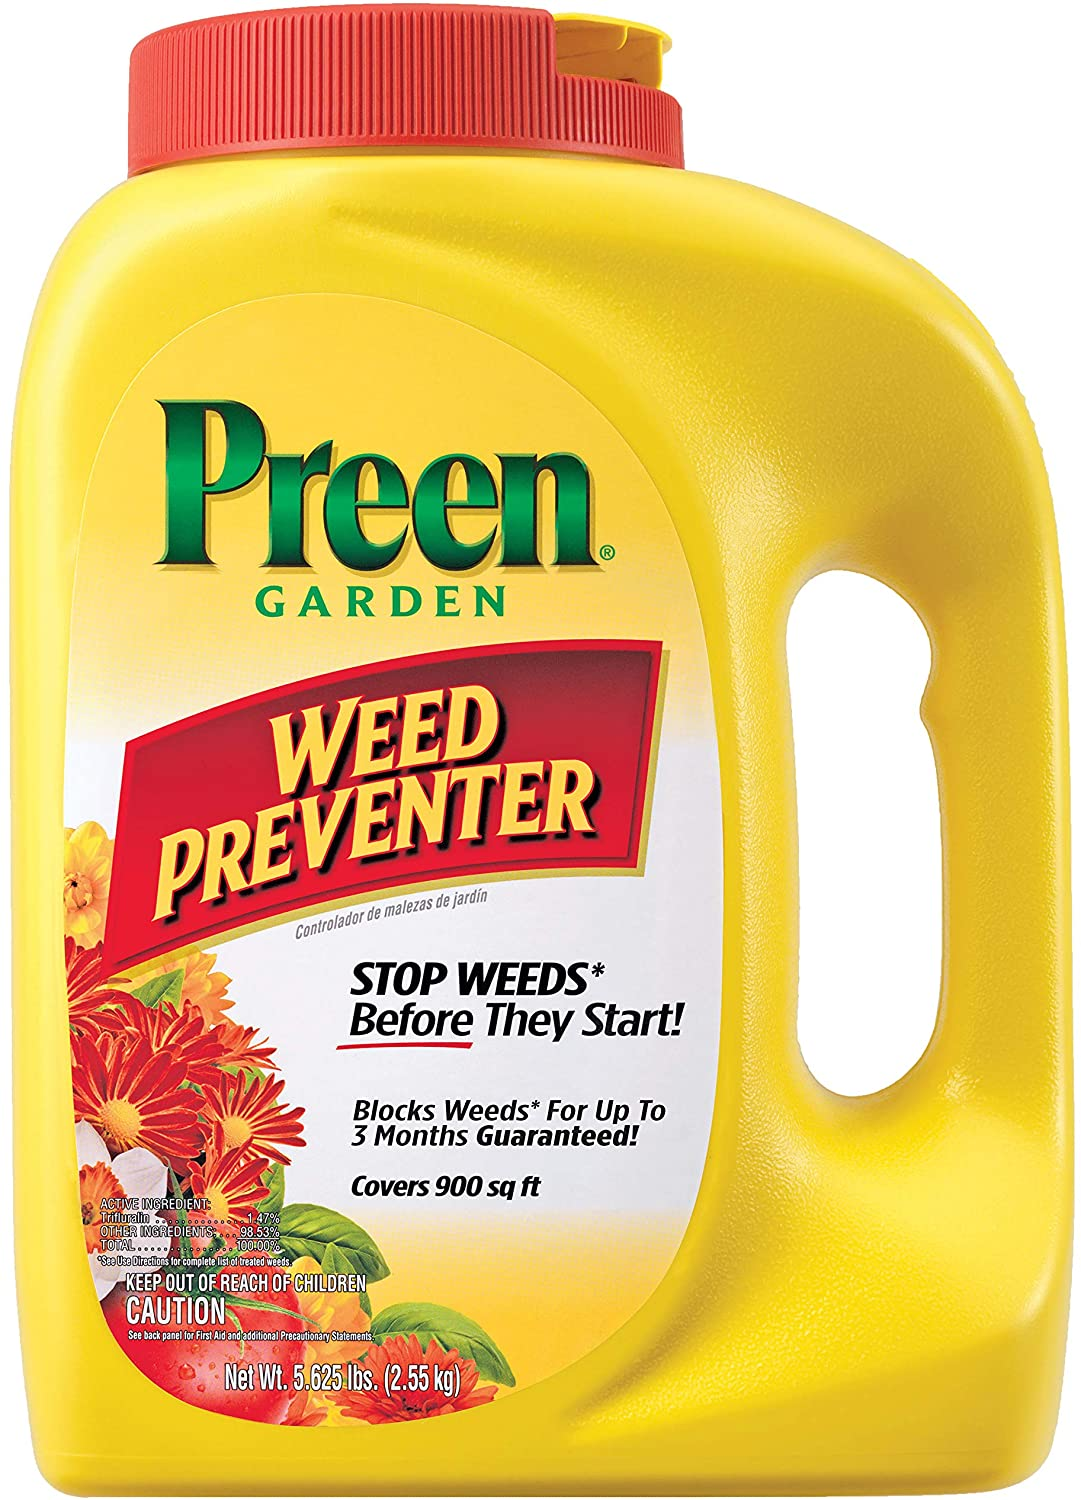 Preen 2464110 Garden Weed Preventer, 5.625 lb. Covers 900 sq. ft